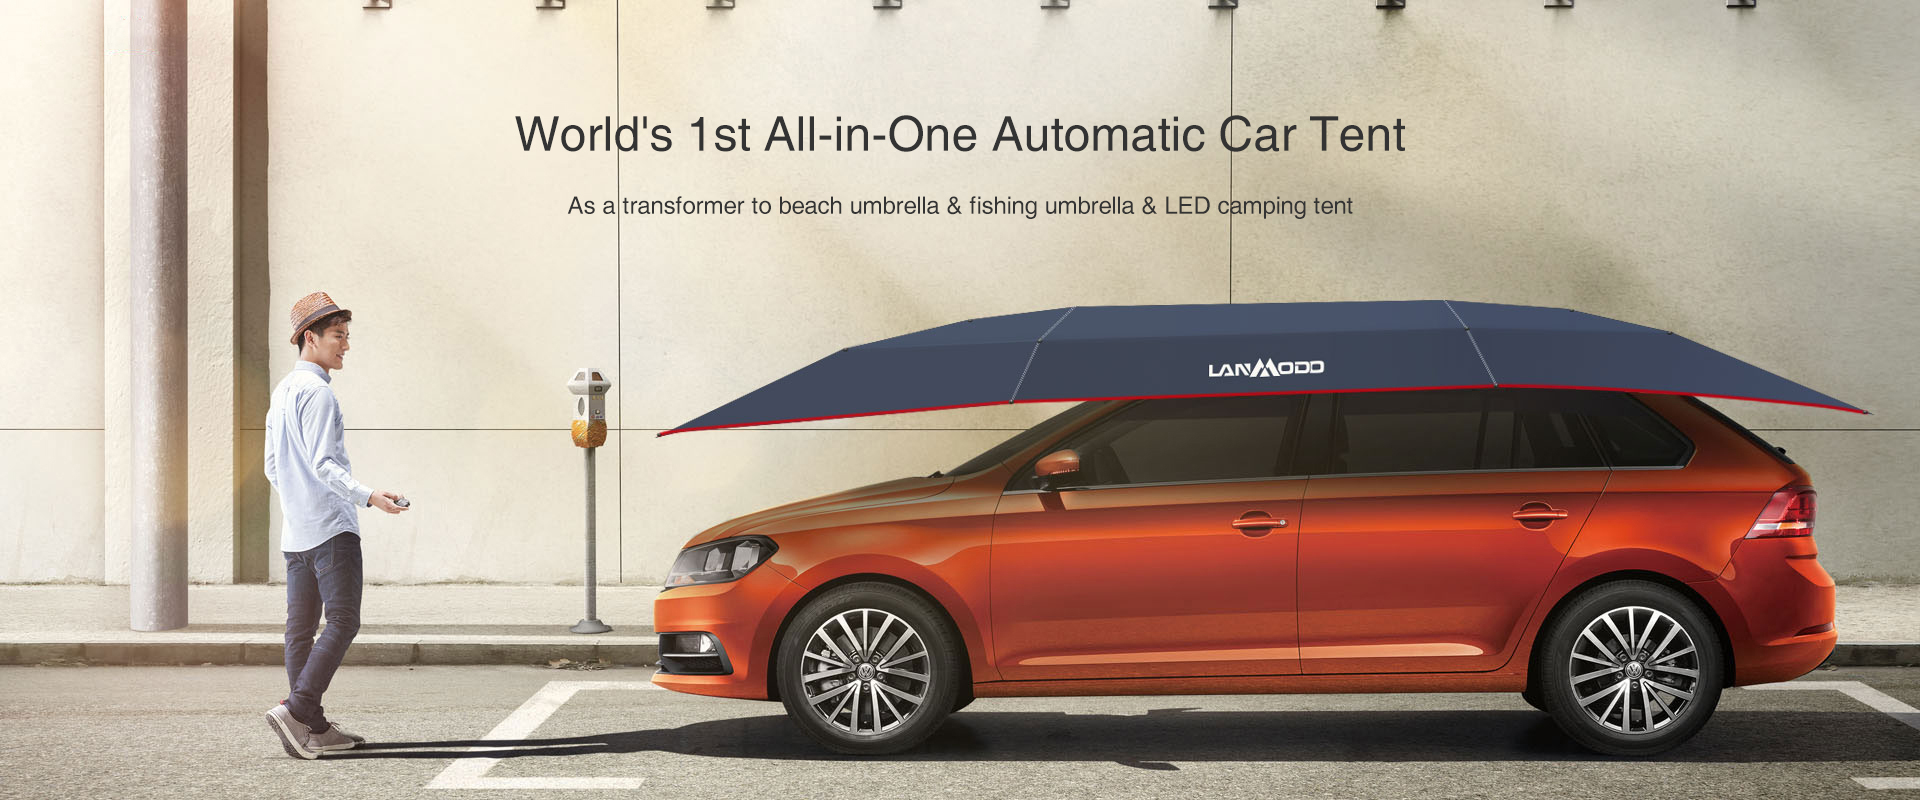 Get your Lanmodo Automatic Car Tent today